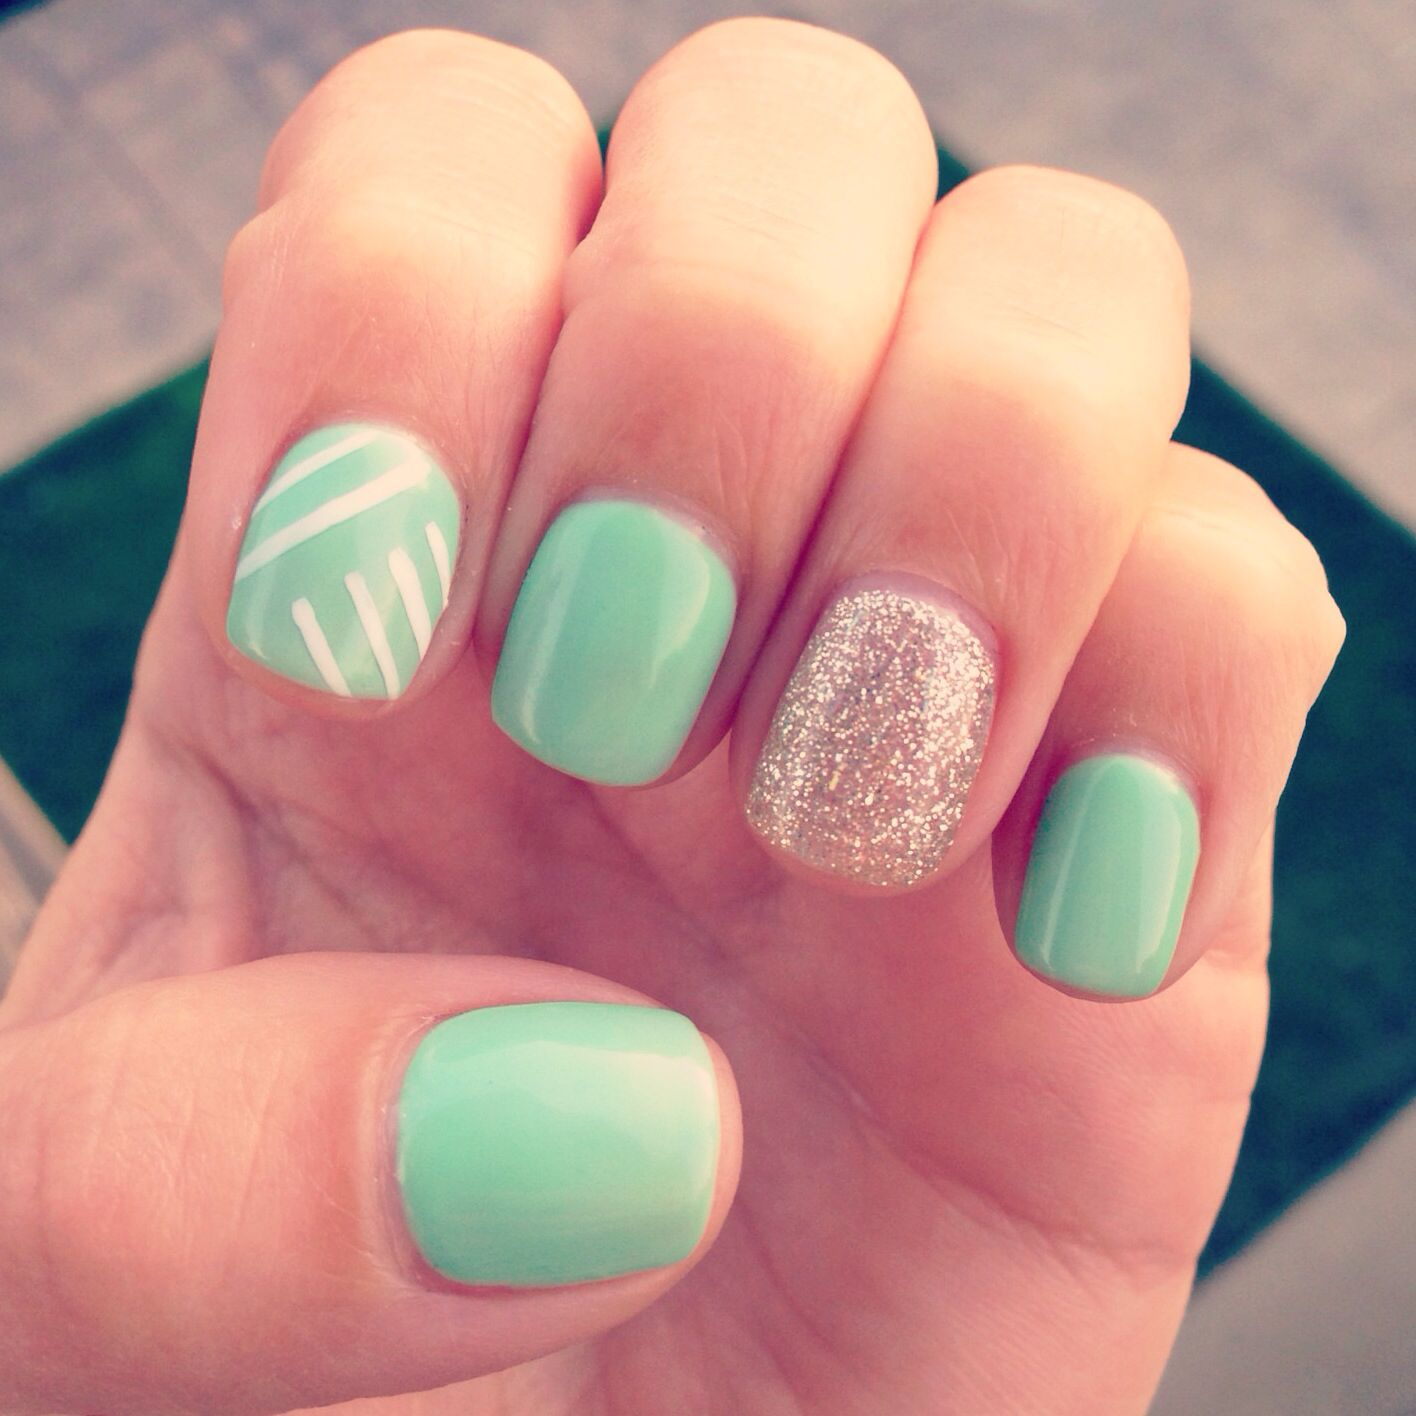 Mint Green Prom Nail: I'm Obsessed With My Mint Gel Manicure!!